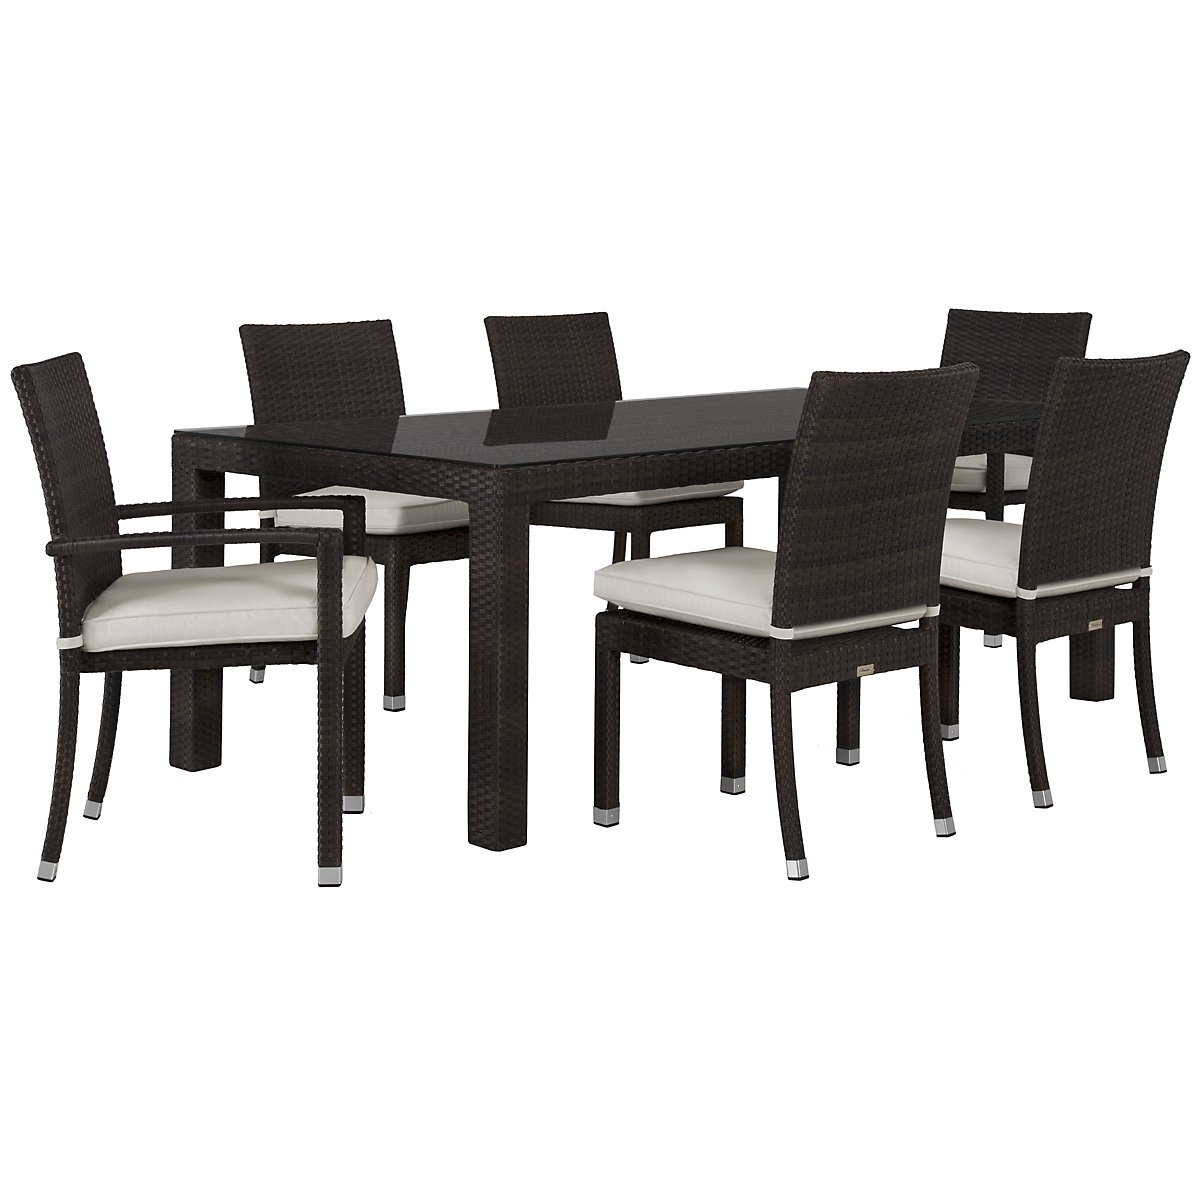 "Zen White 84"" Rectangular Table & 4 Chairs"